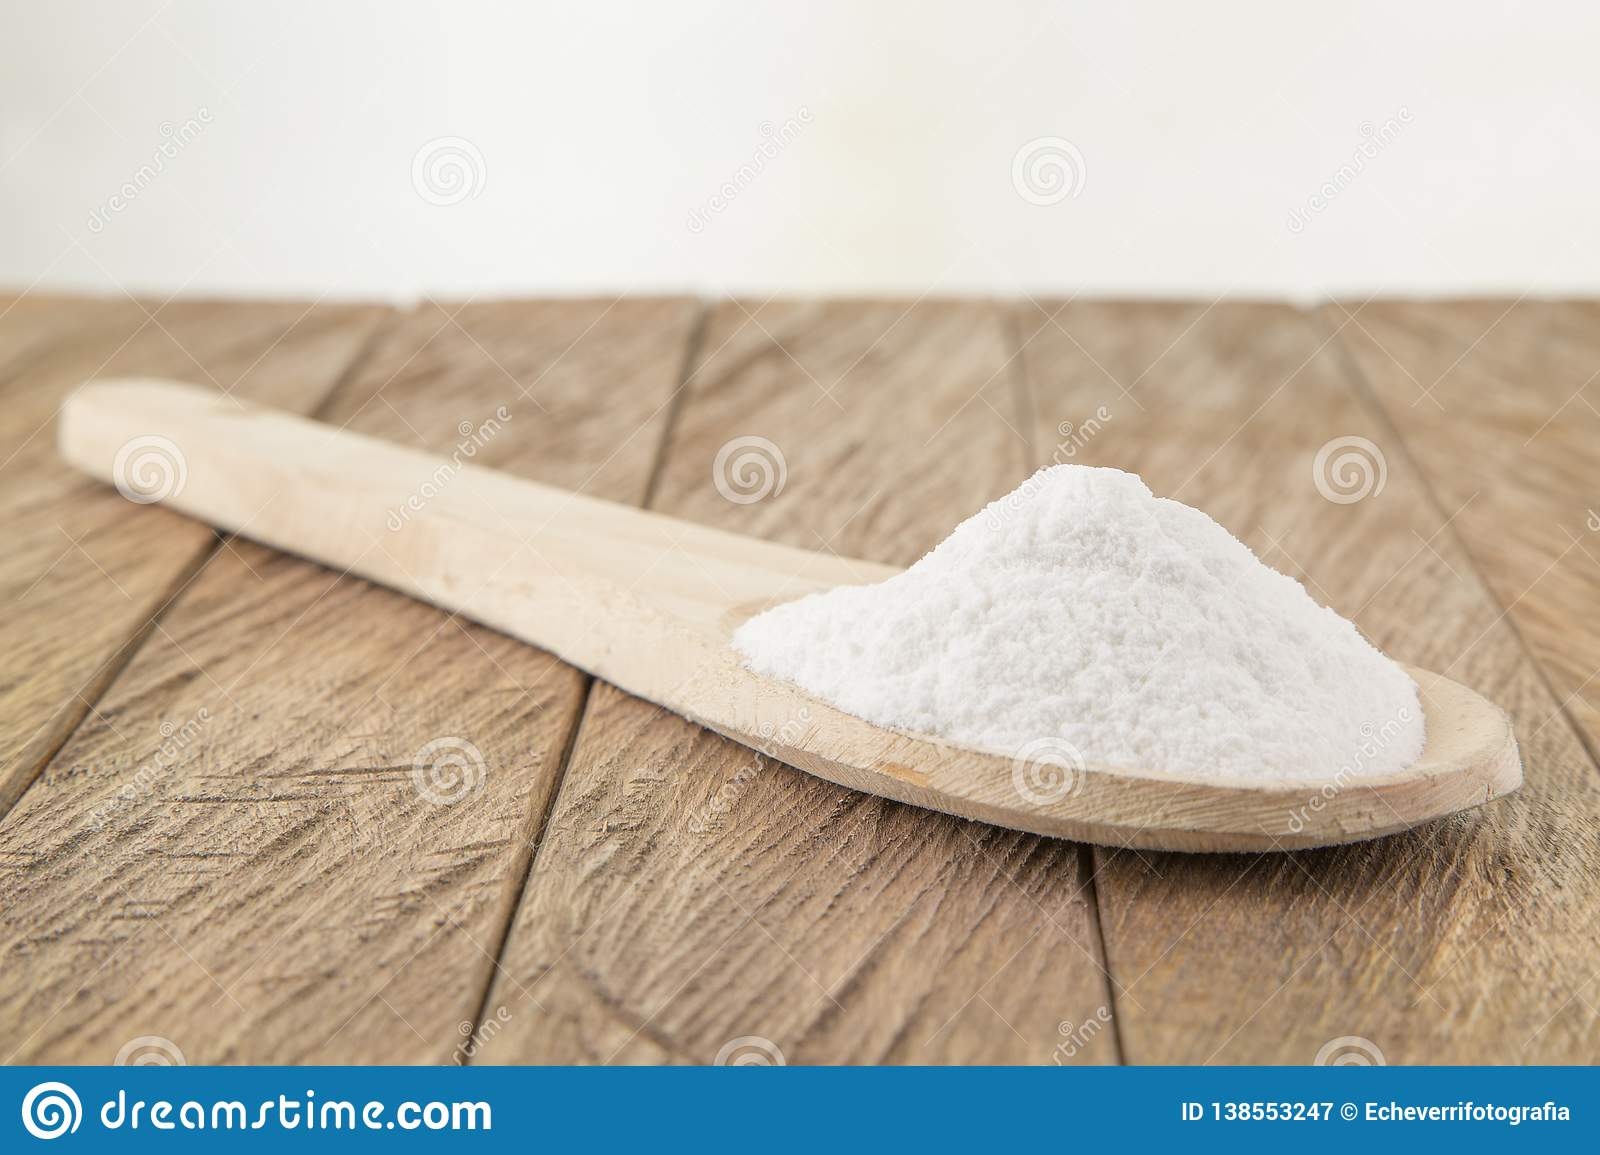 Baking Soda Sodium Bicarbonate In A Wooden Spoon Stock Image